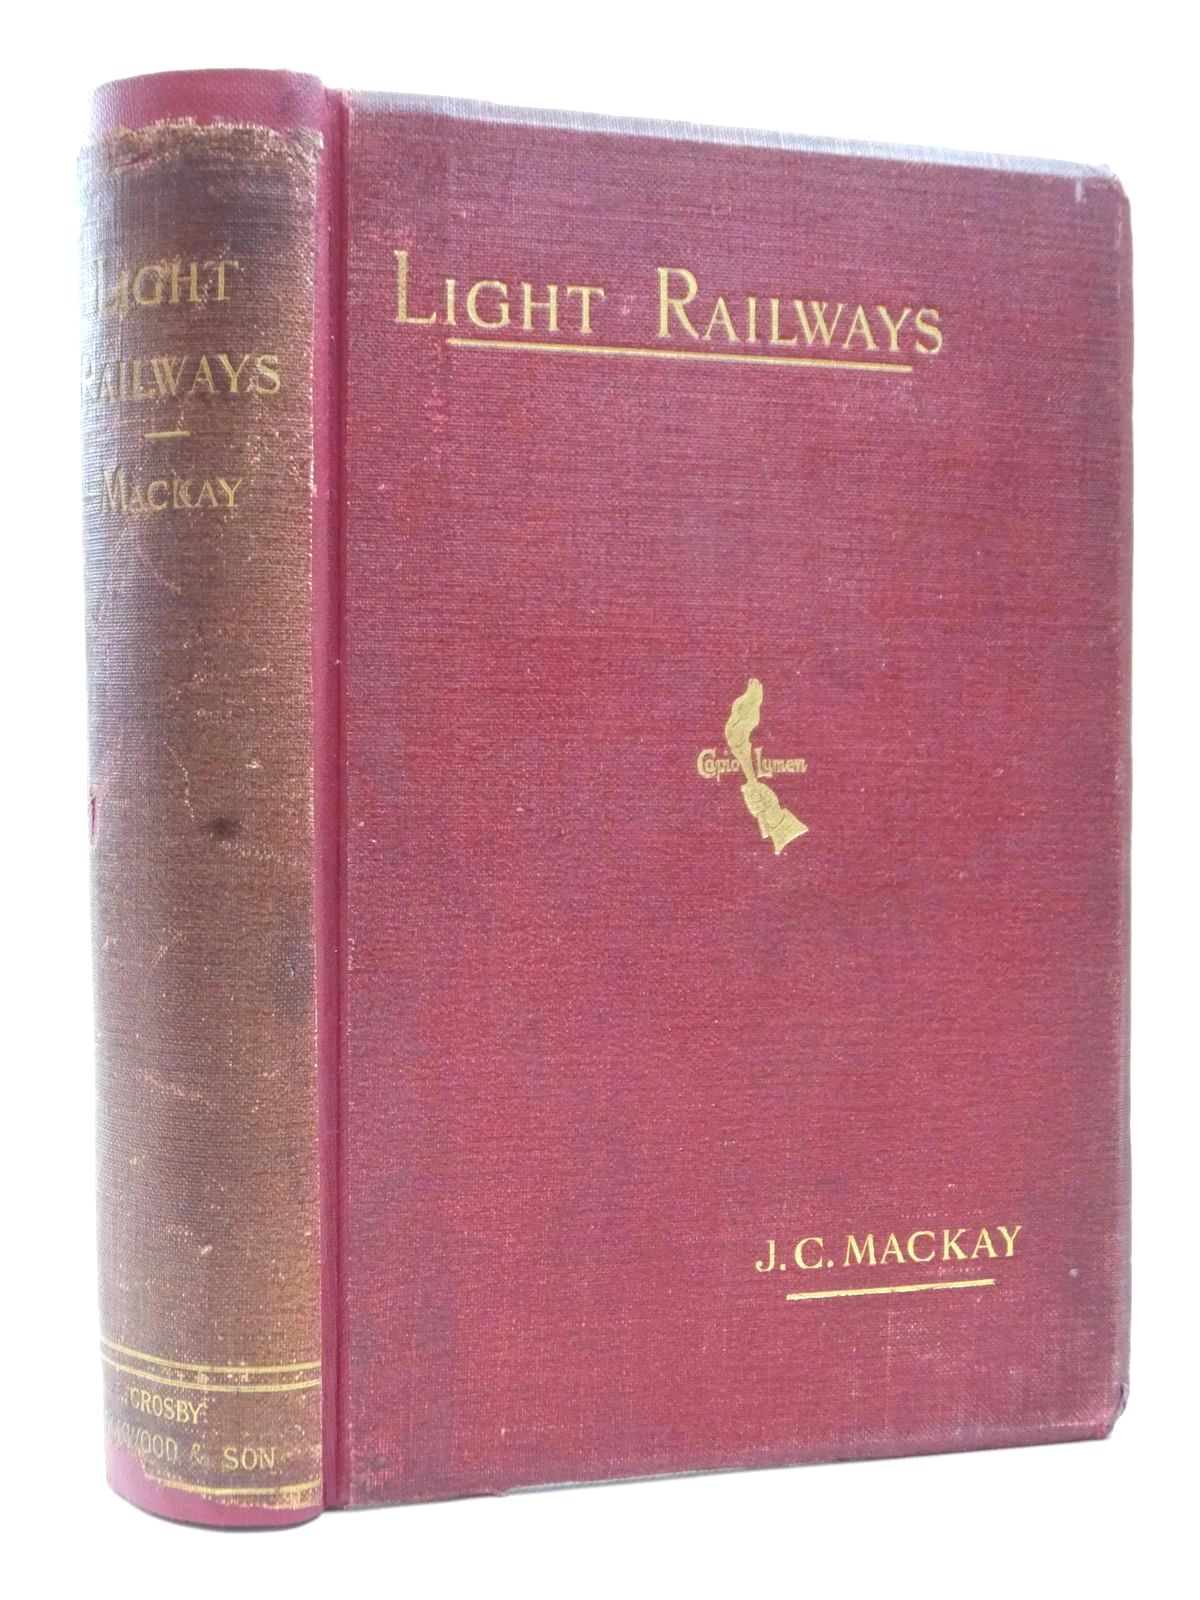 Photo of LIGHT RAILWAYS FOR THE UNITED KINGDOM, INDIA, AND THE COLONIES written by Mackay, John Charles published by Crosby Lockwood and Son (STOCK CODE: 1609461)  for sale by Stella & Rose's Books